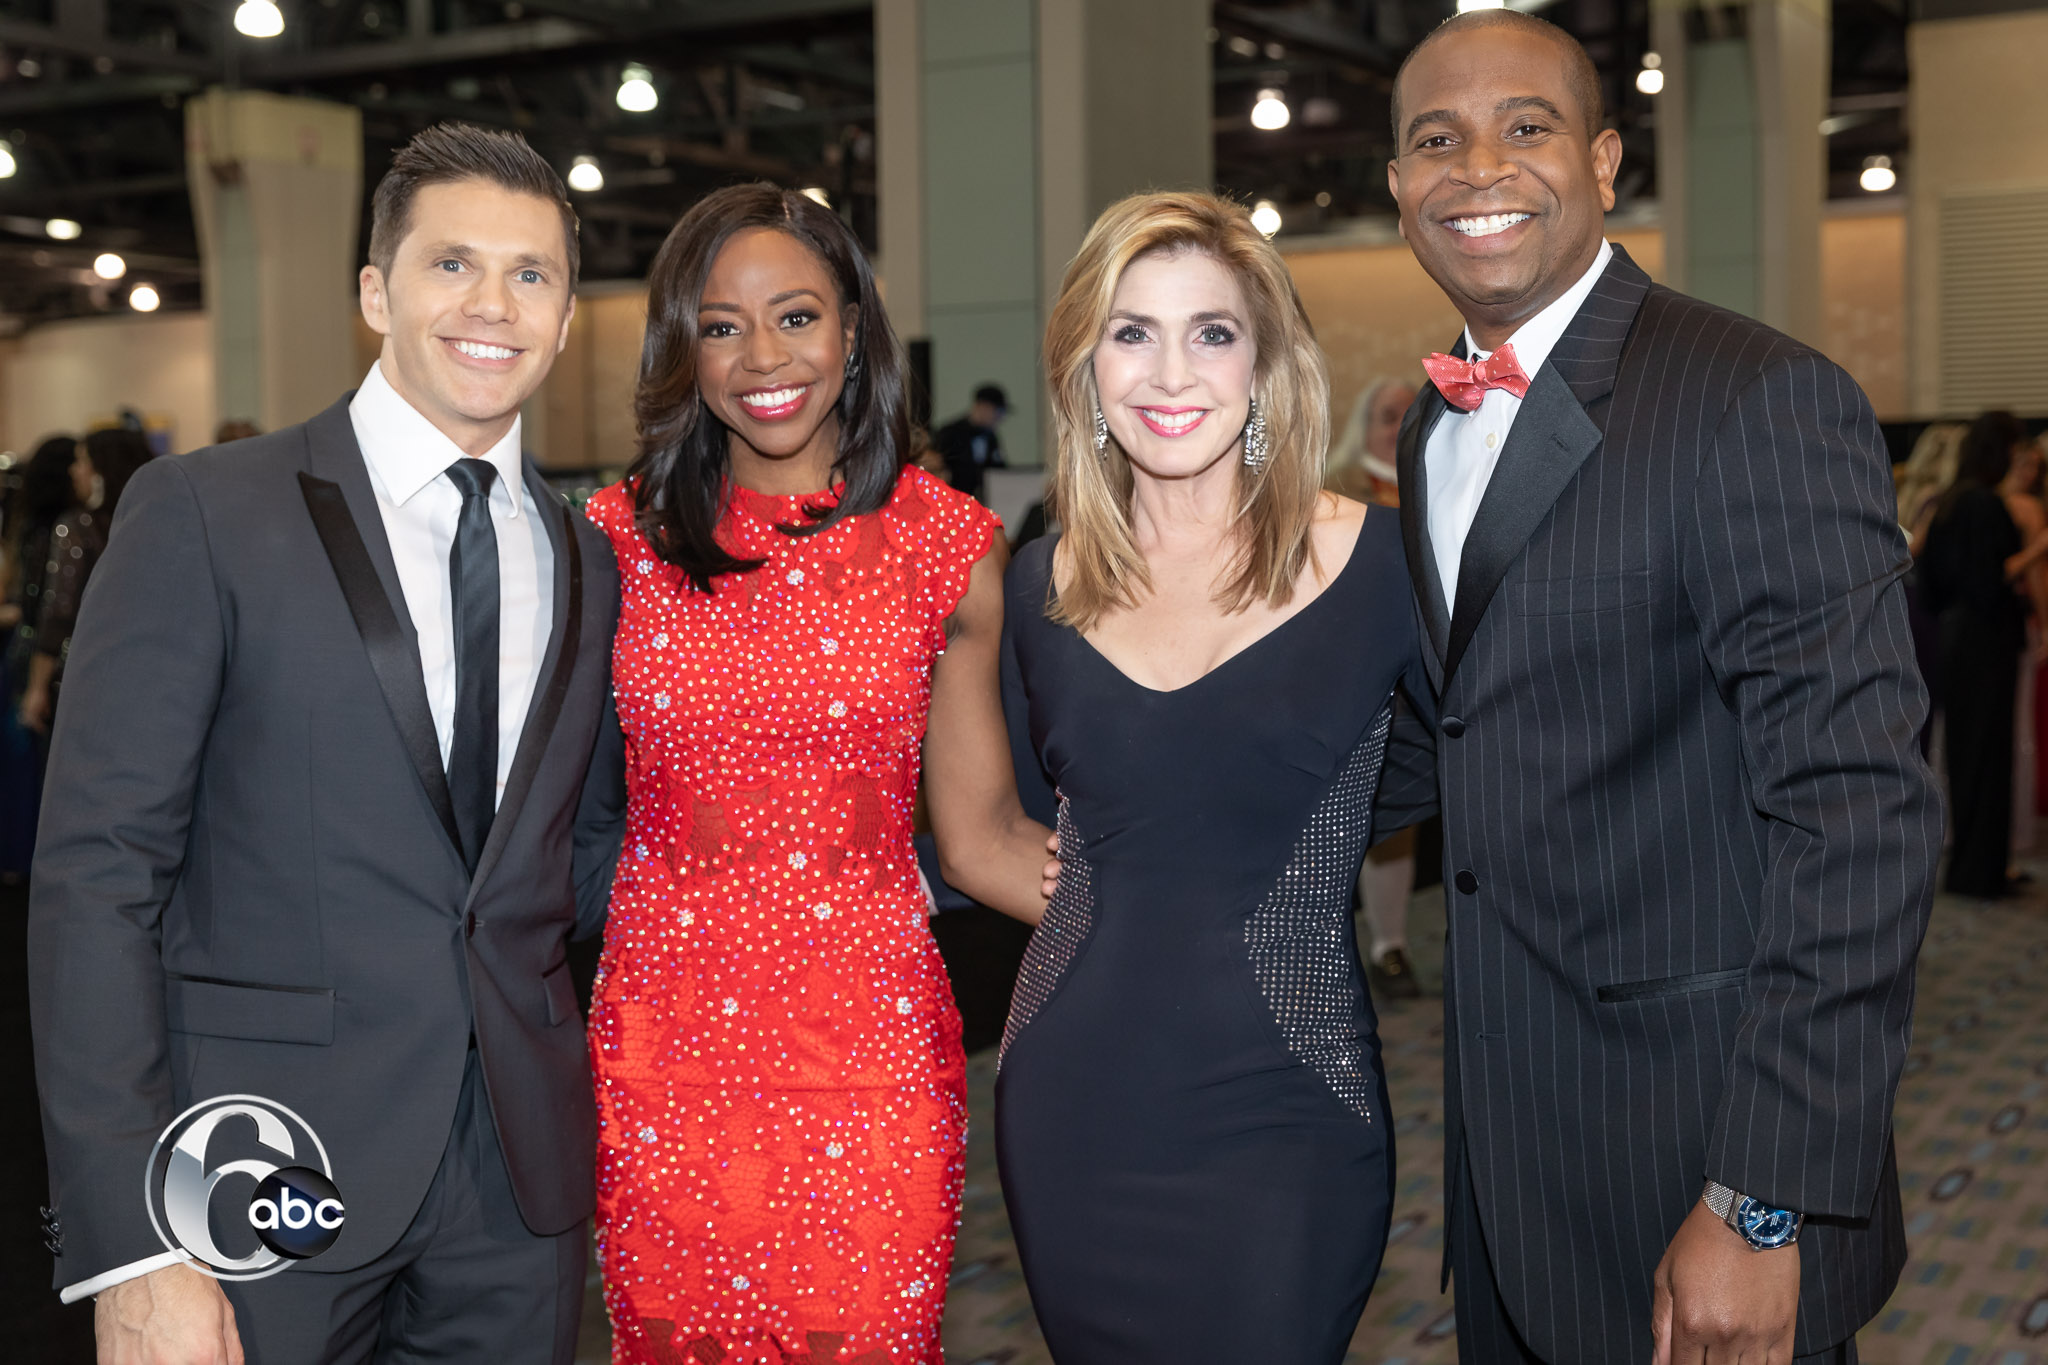 Behind the scenes at the Black Tie Tailgate as the 6abc team prepares this years Auto Show Preview